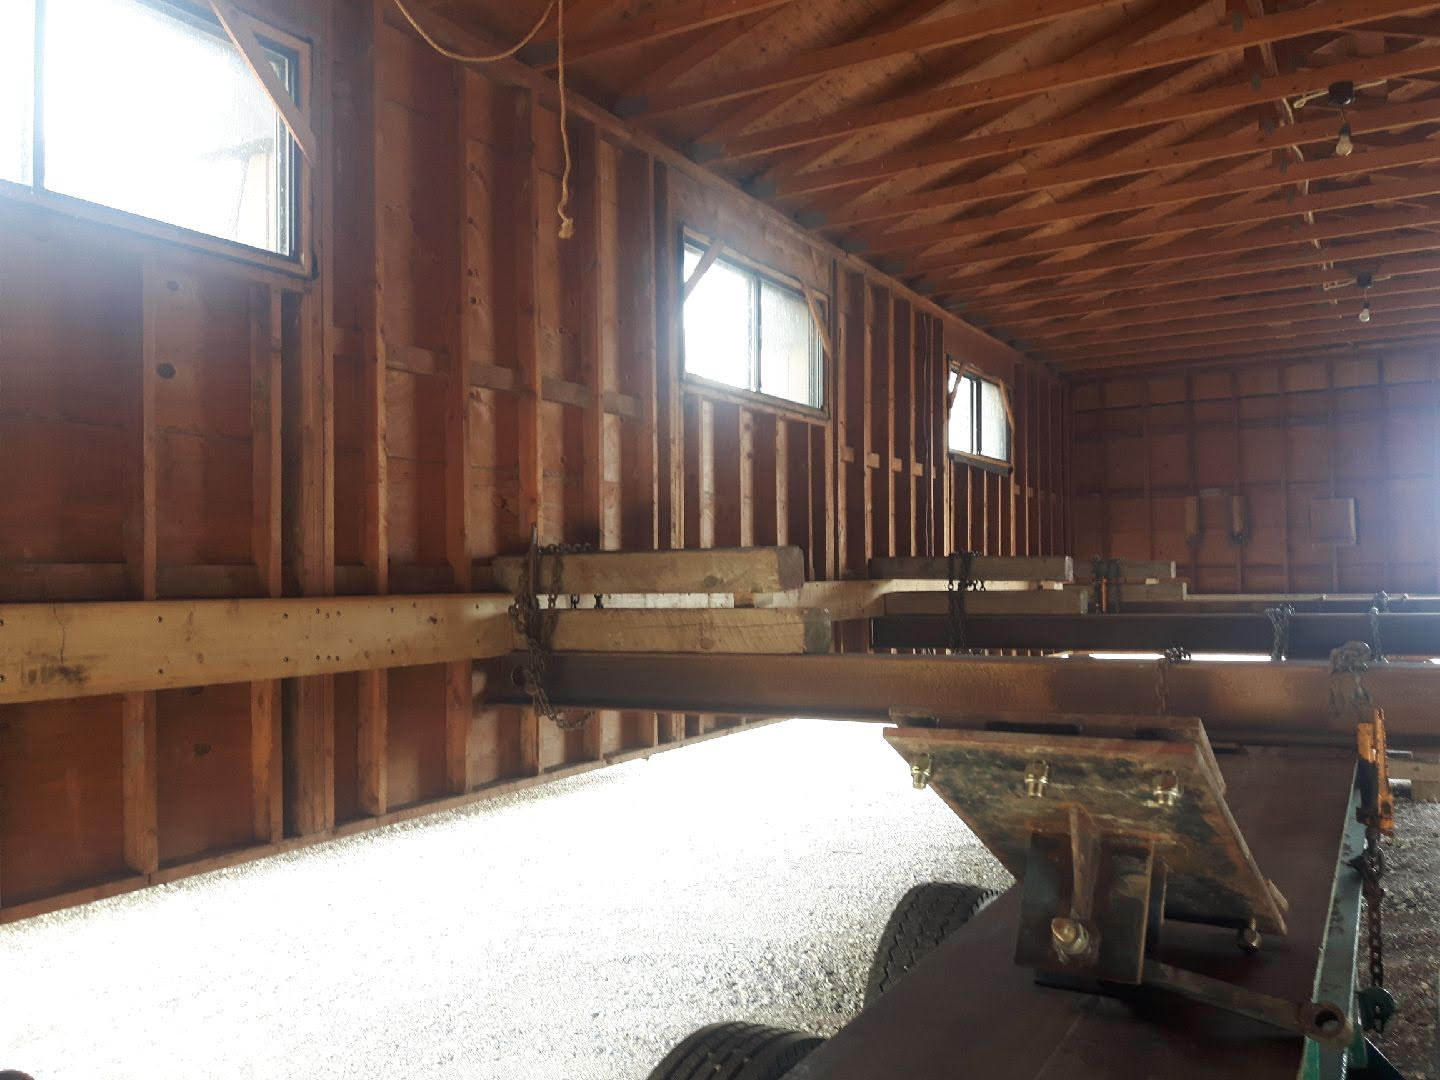 https://0901.nccdn.net/4_2/000/000/03f/ac7/interior-of-barn.jpg